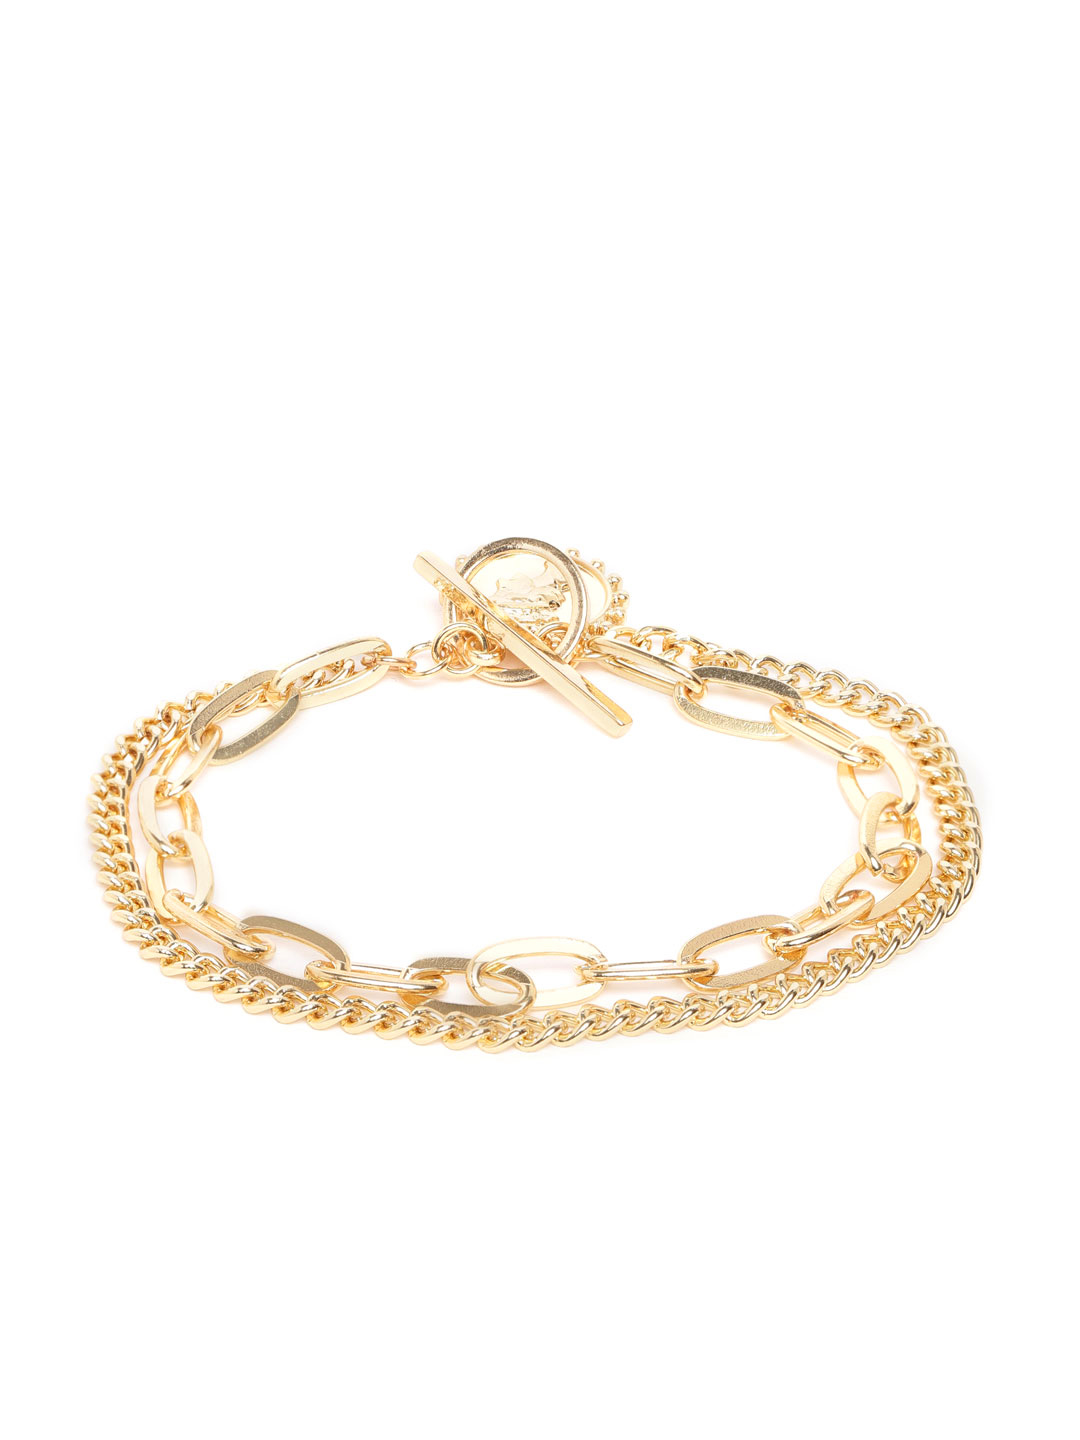 Cuffs and Bangles-Charmed By You Bracelet2